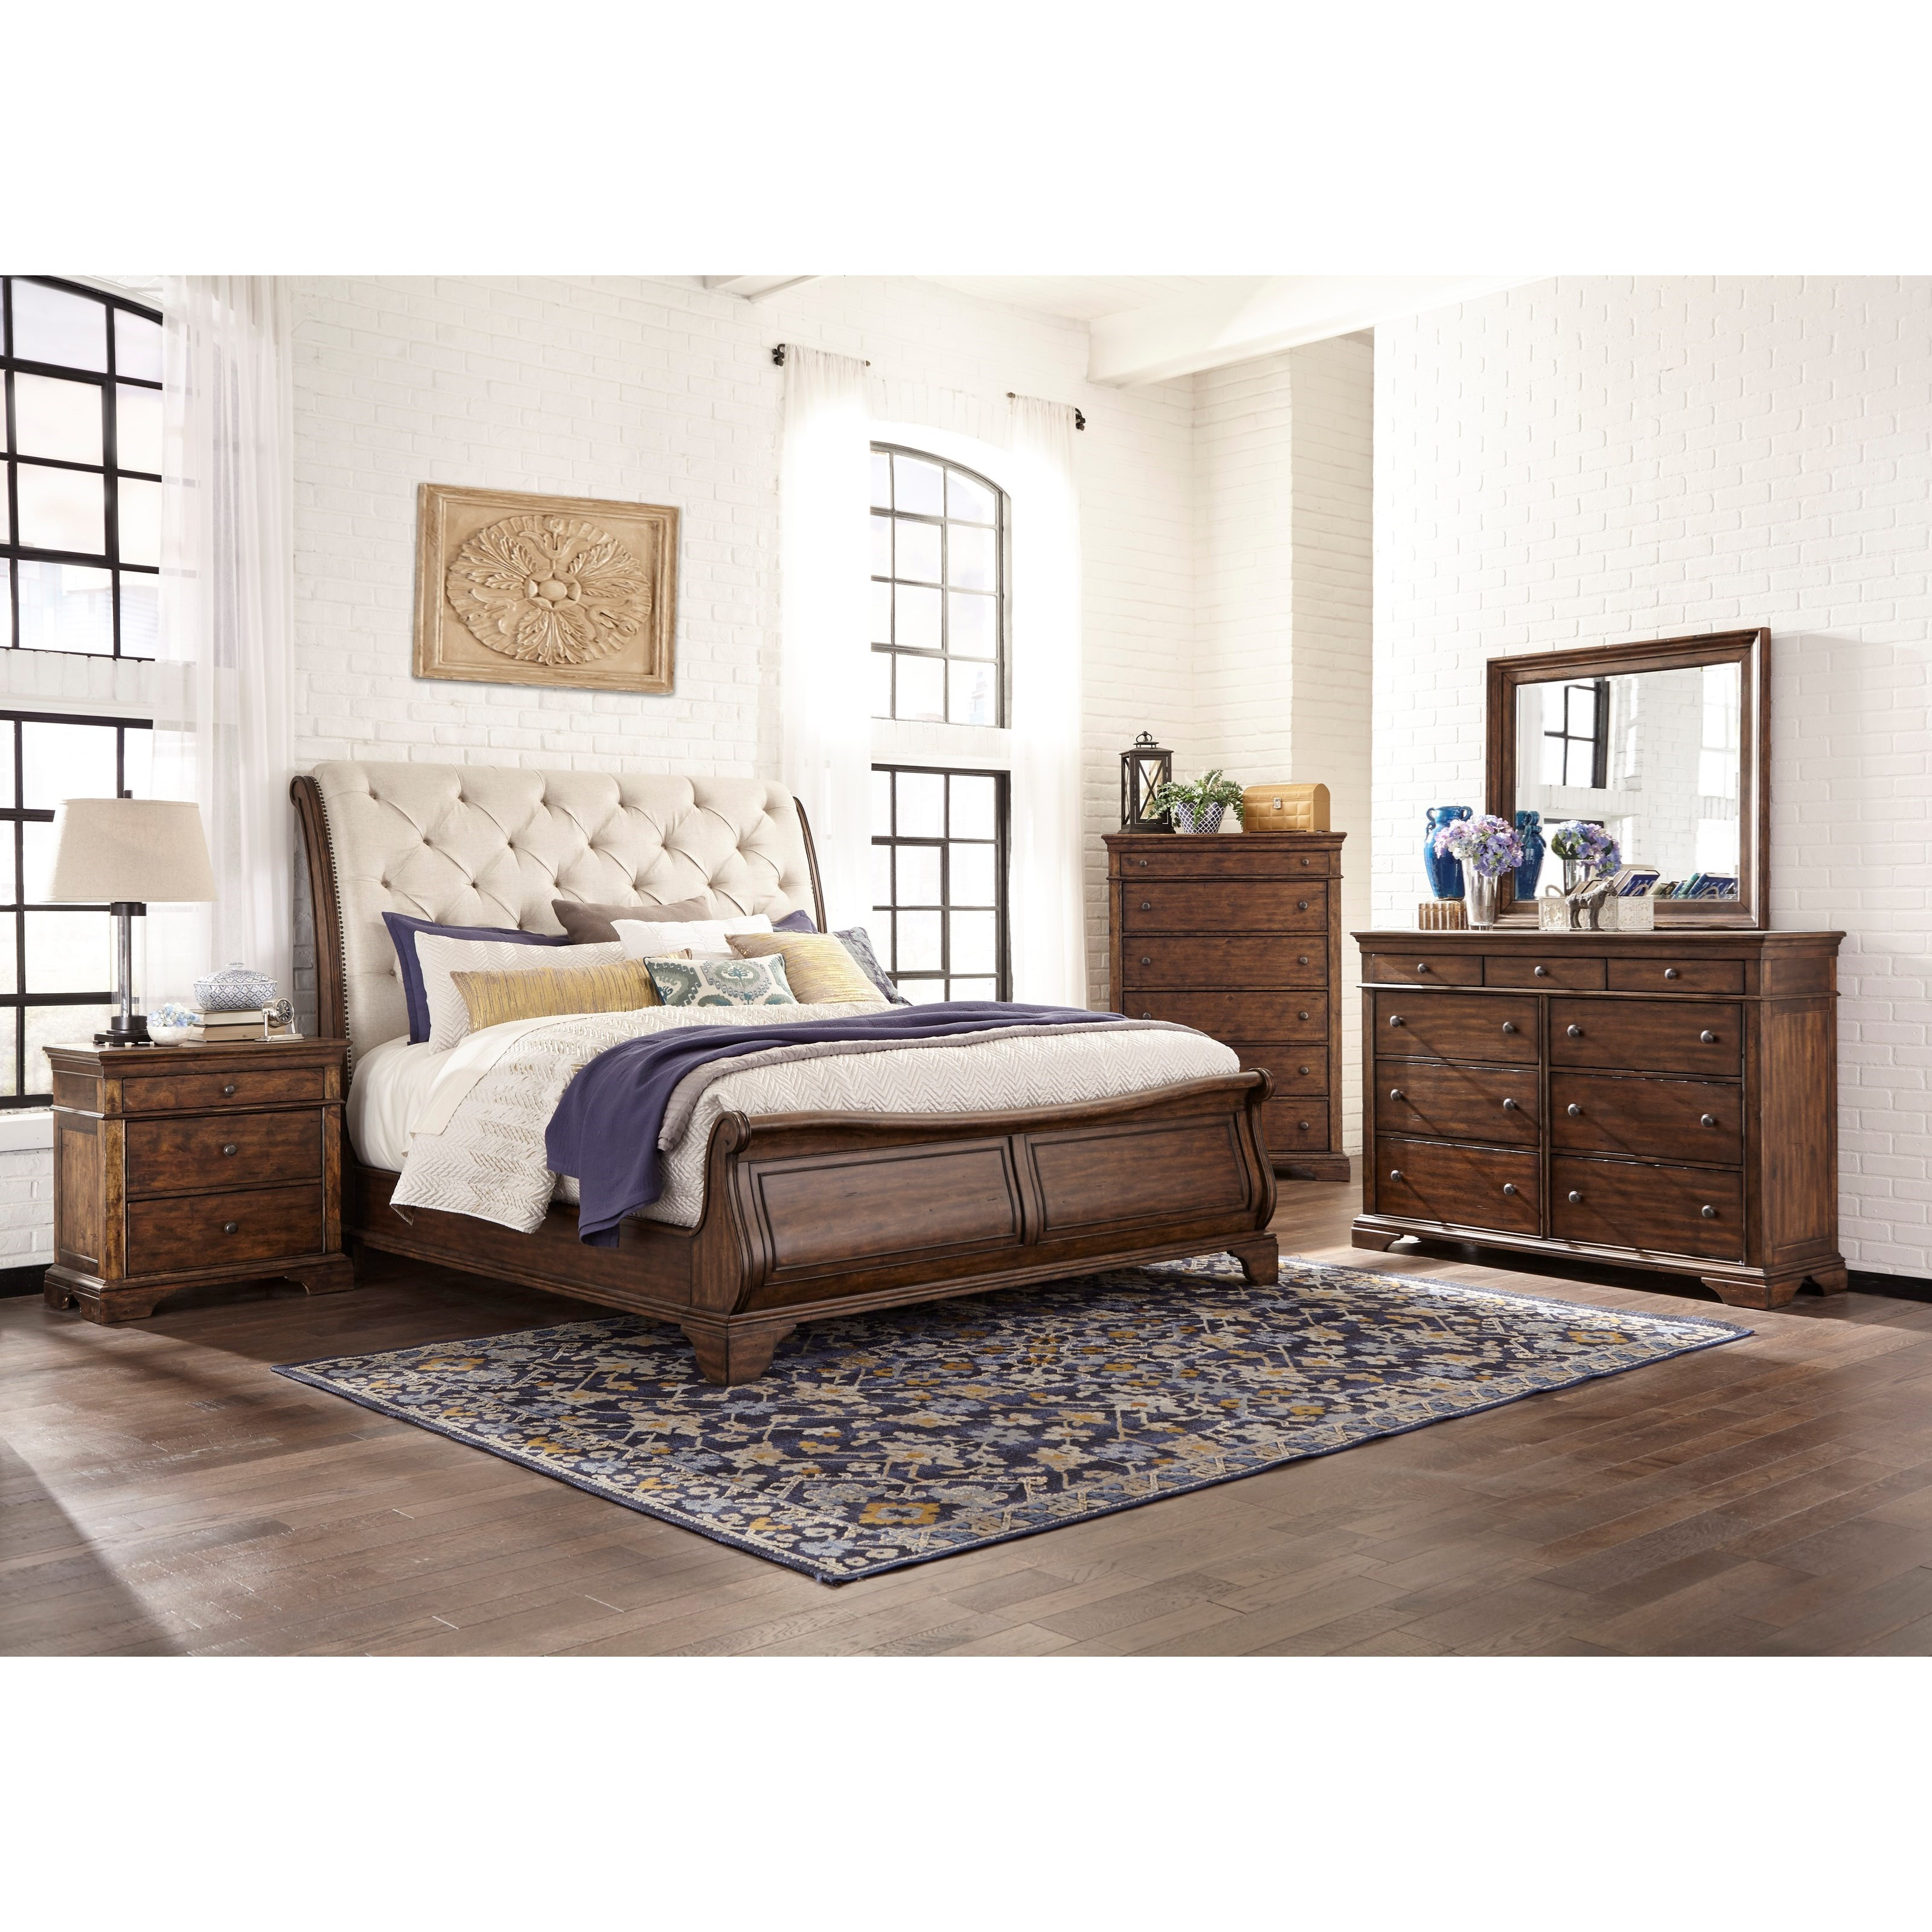 Trisha yearwood home collection by klaussner trisha for Bedroom groups